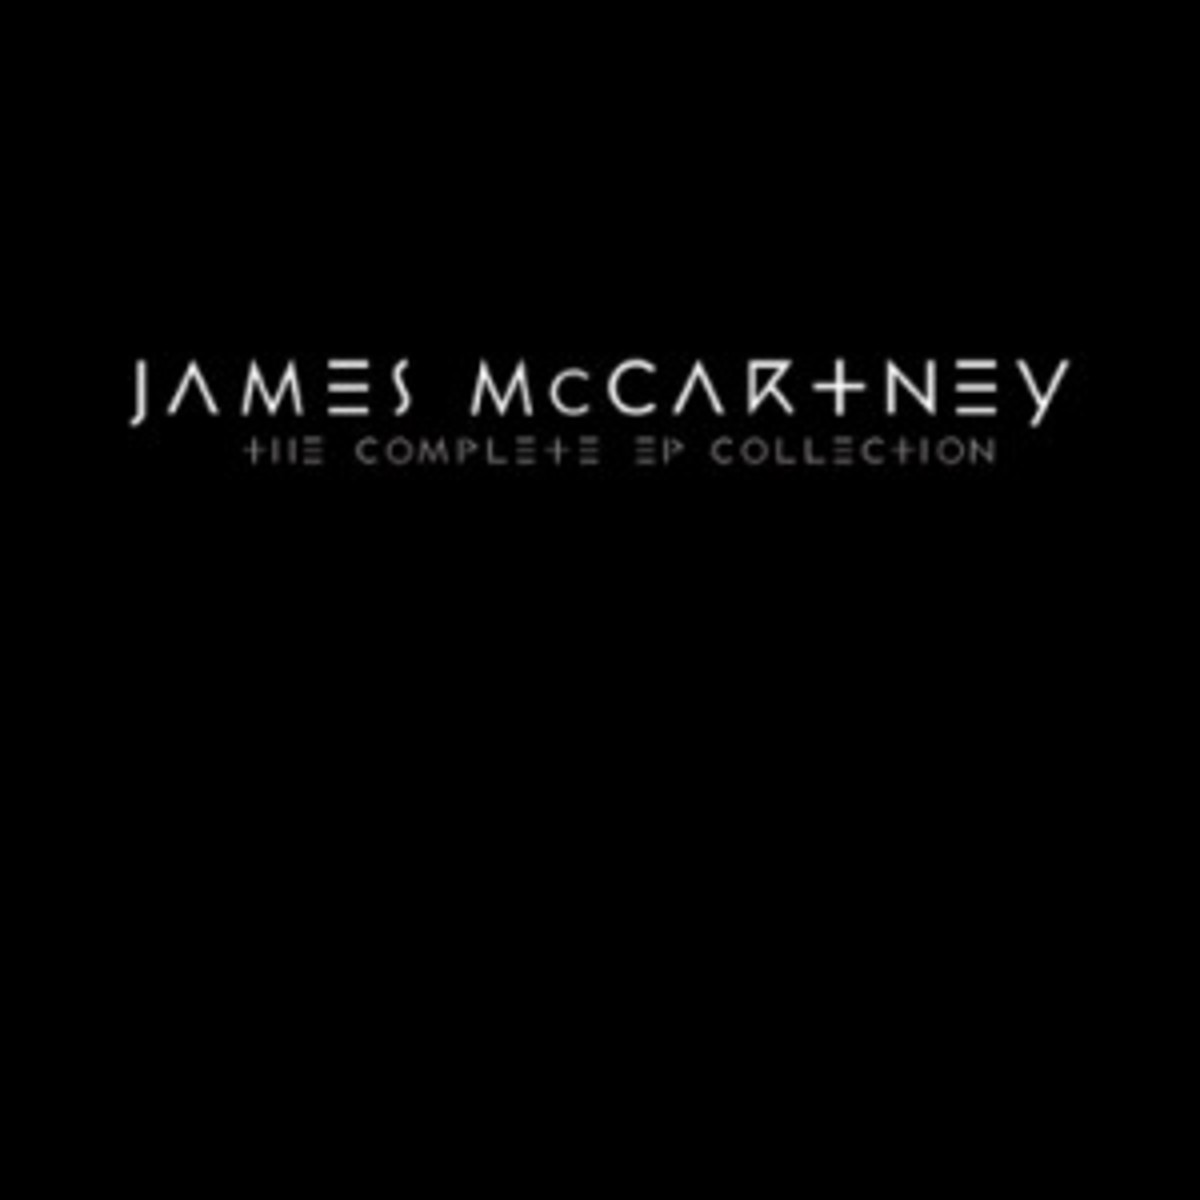 James McCartney Complete EP Collection